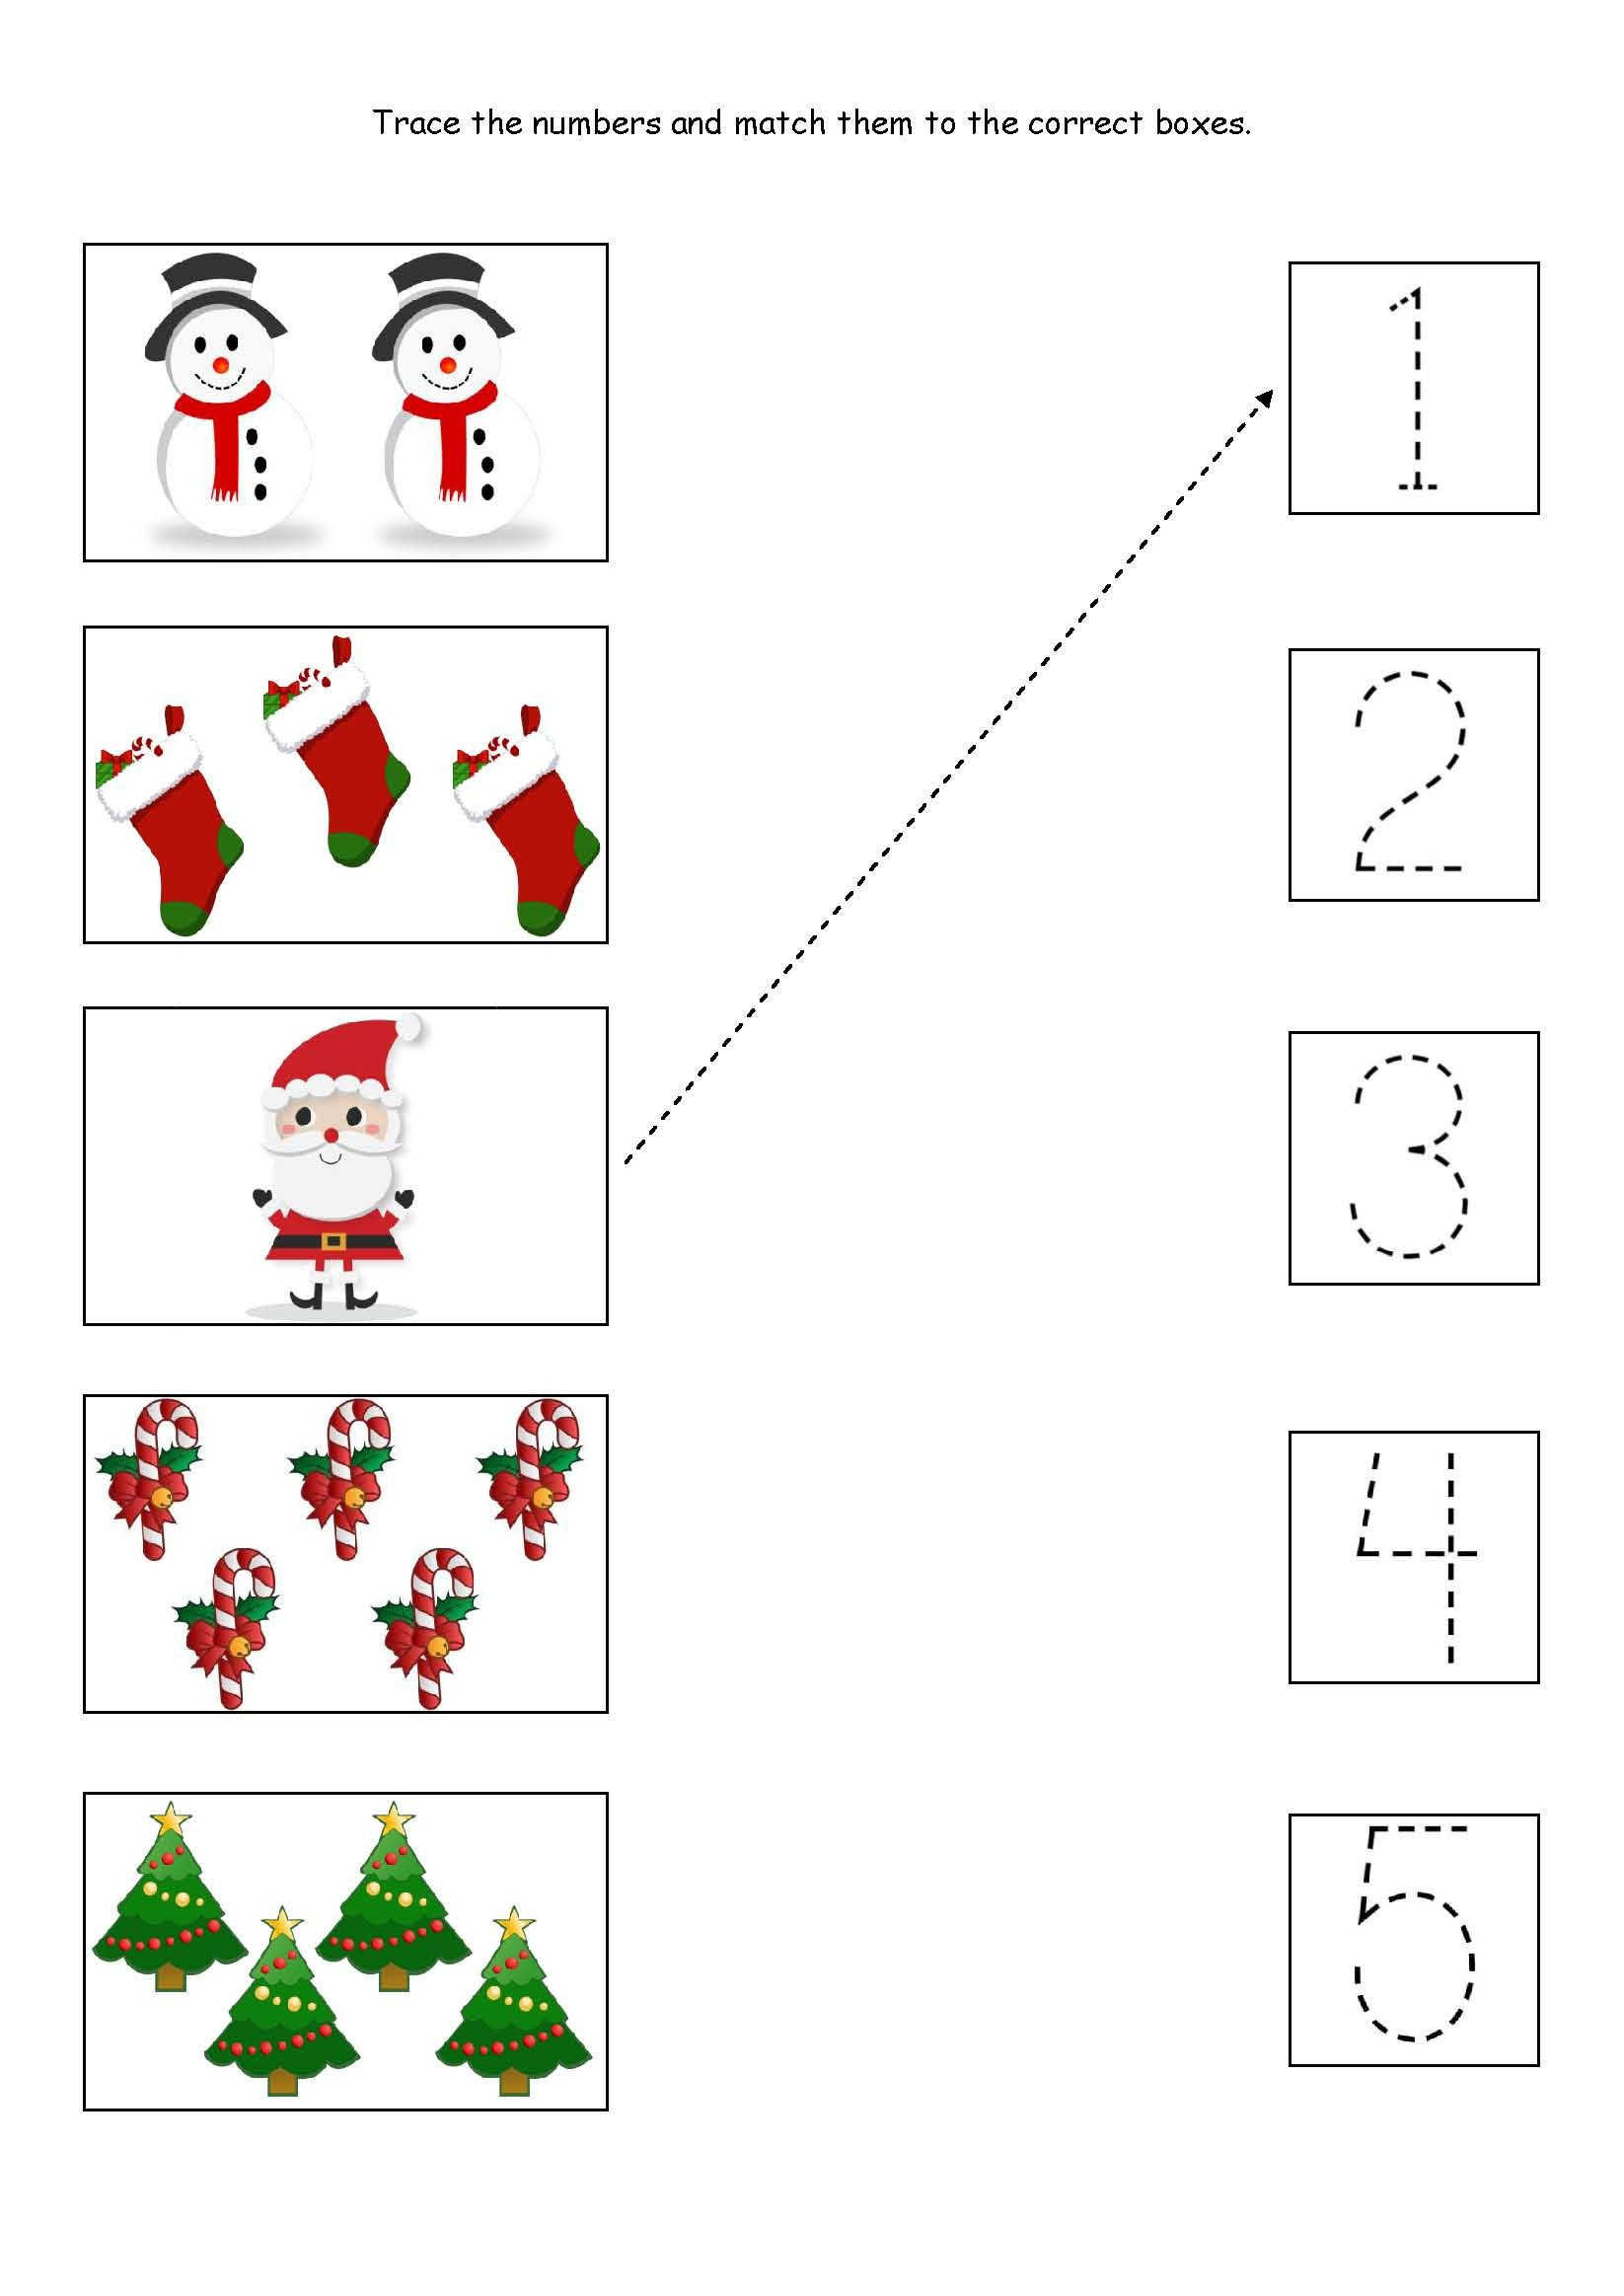 Cute little Christmas counting matching and tracing